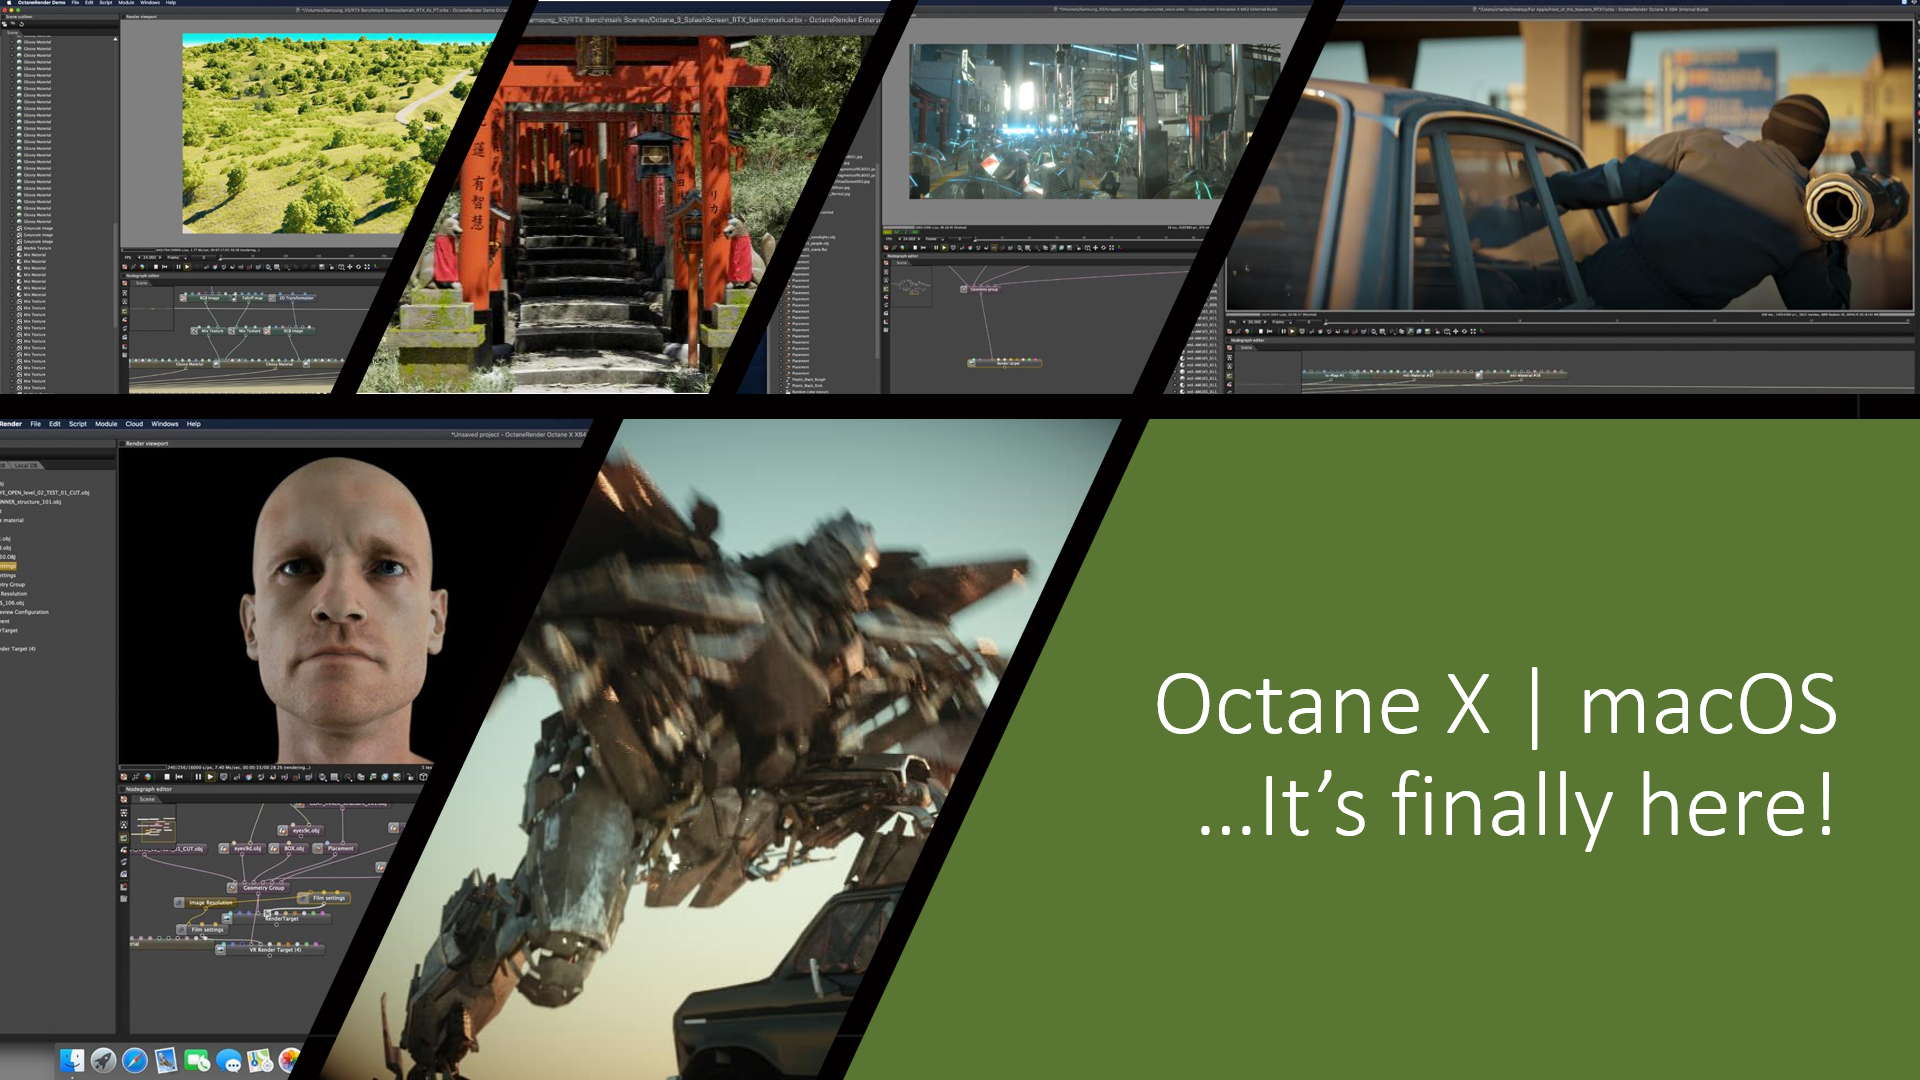 Octane X | PR1 is out for macOS Catalina!